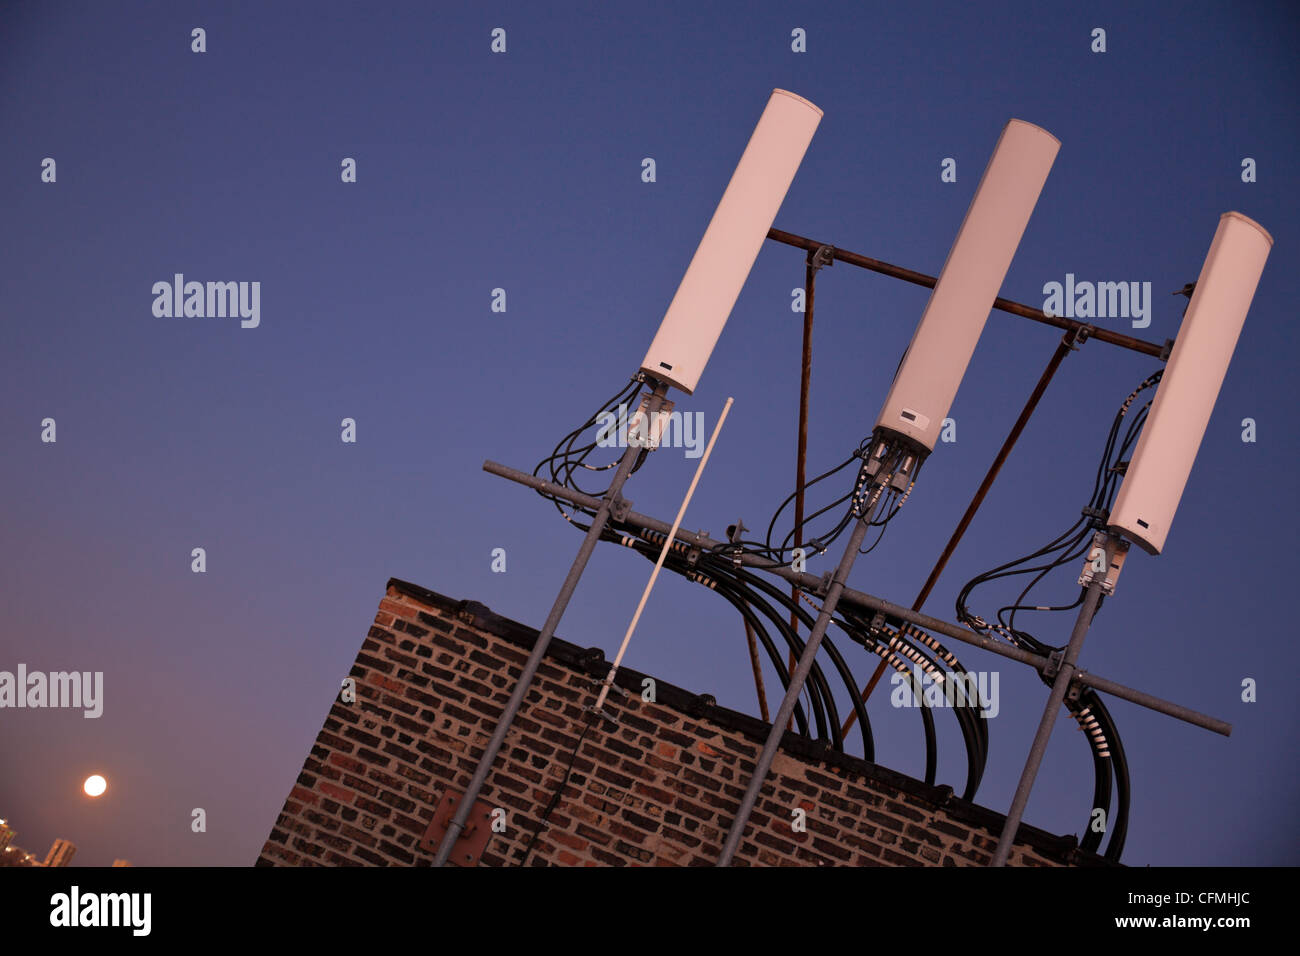 USA, Illinois, Chicago, Rooftop with antenna - Stock Image